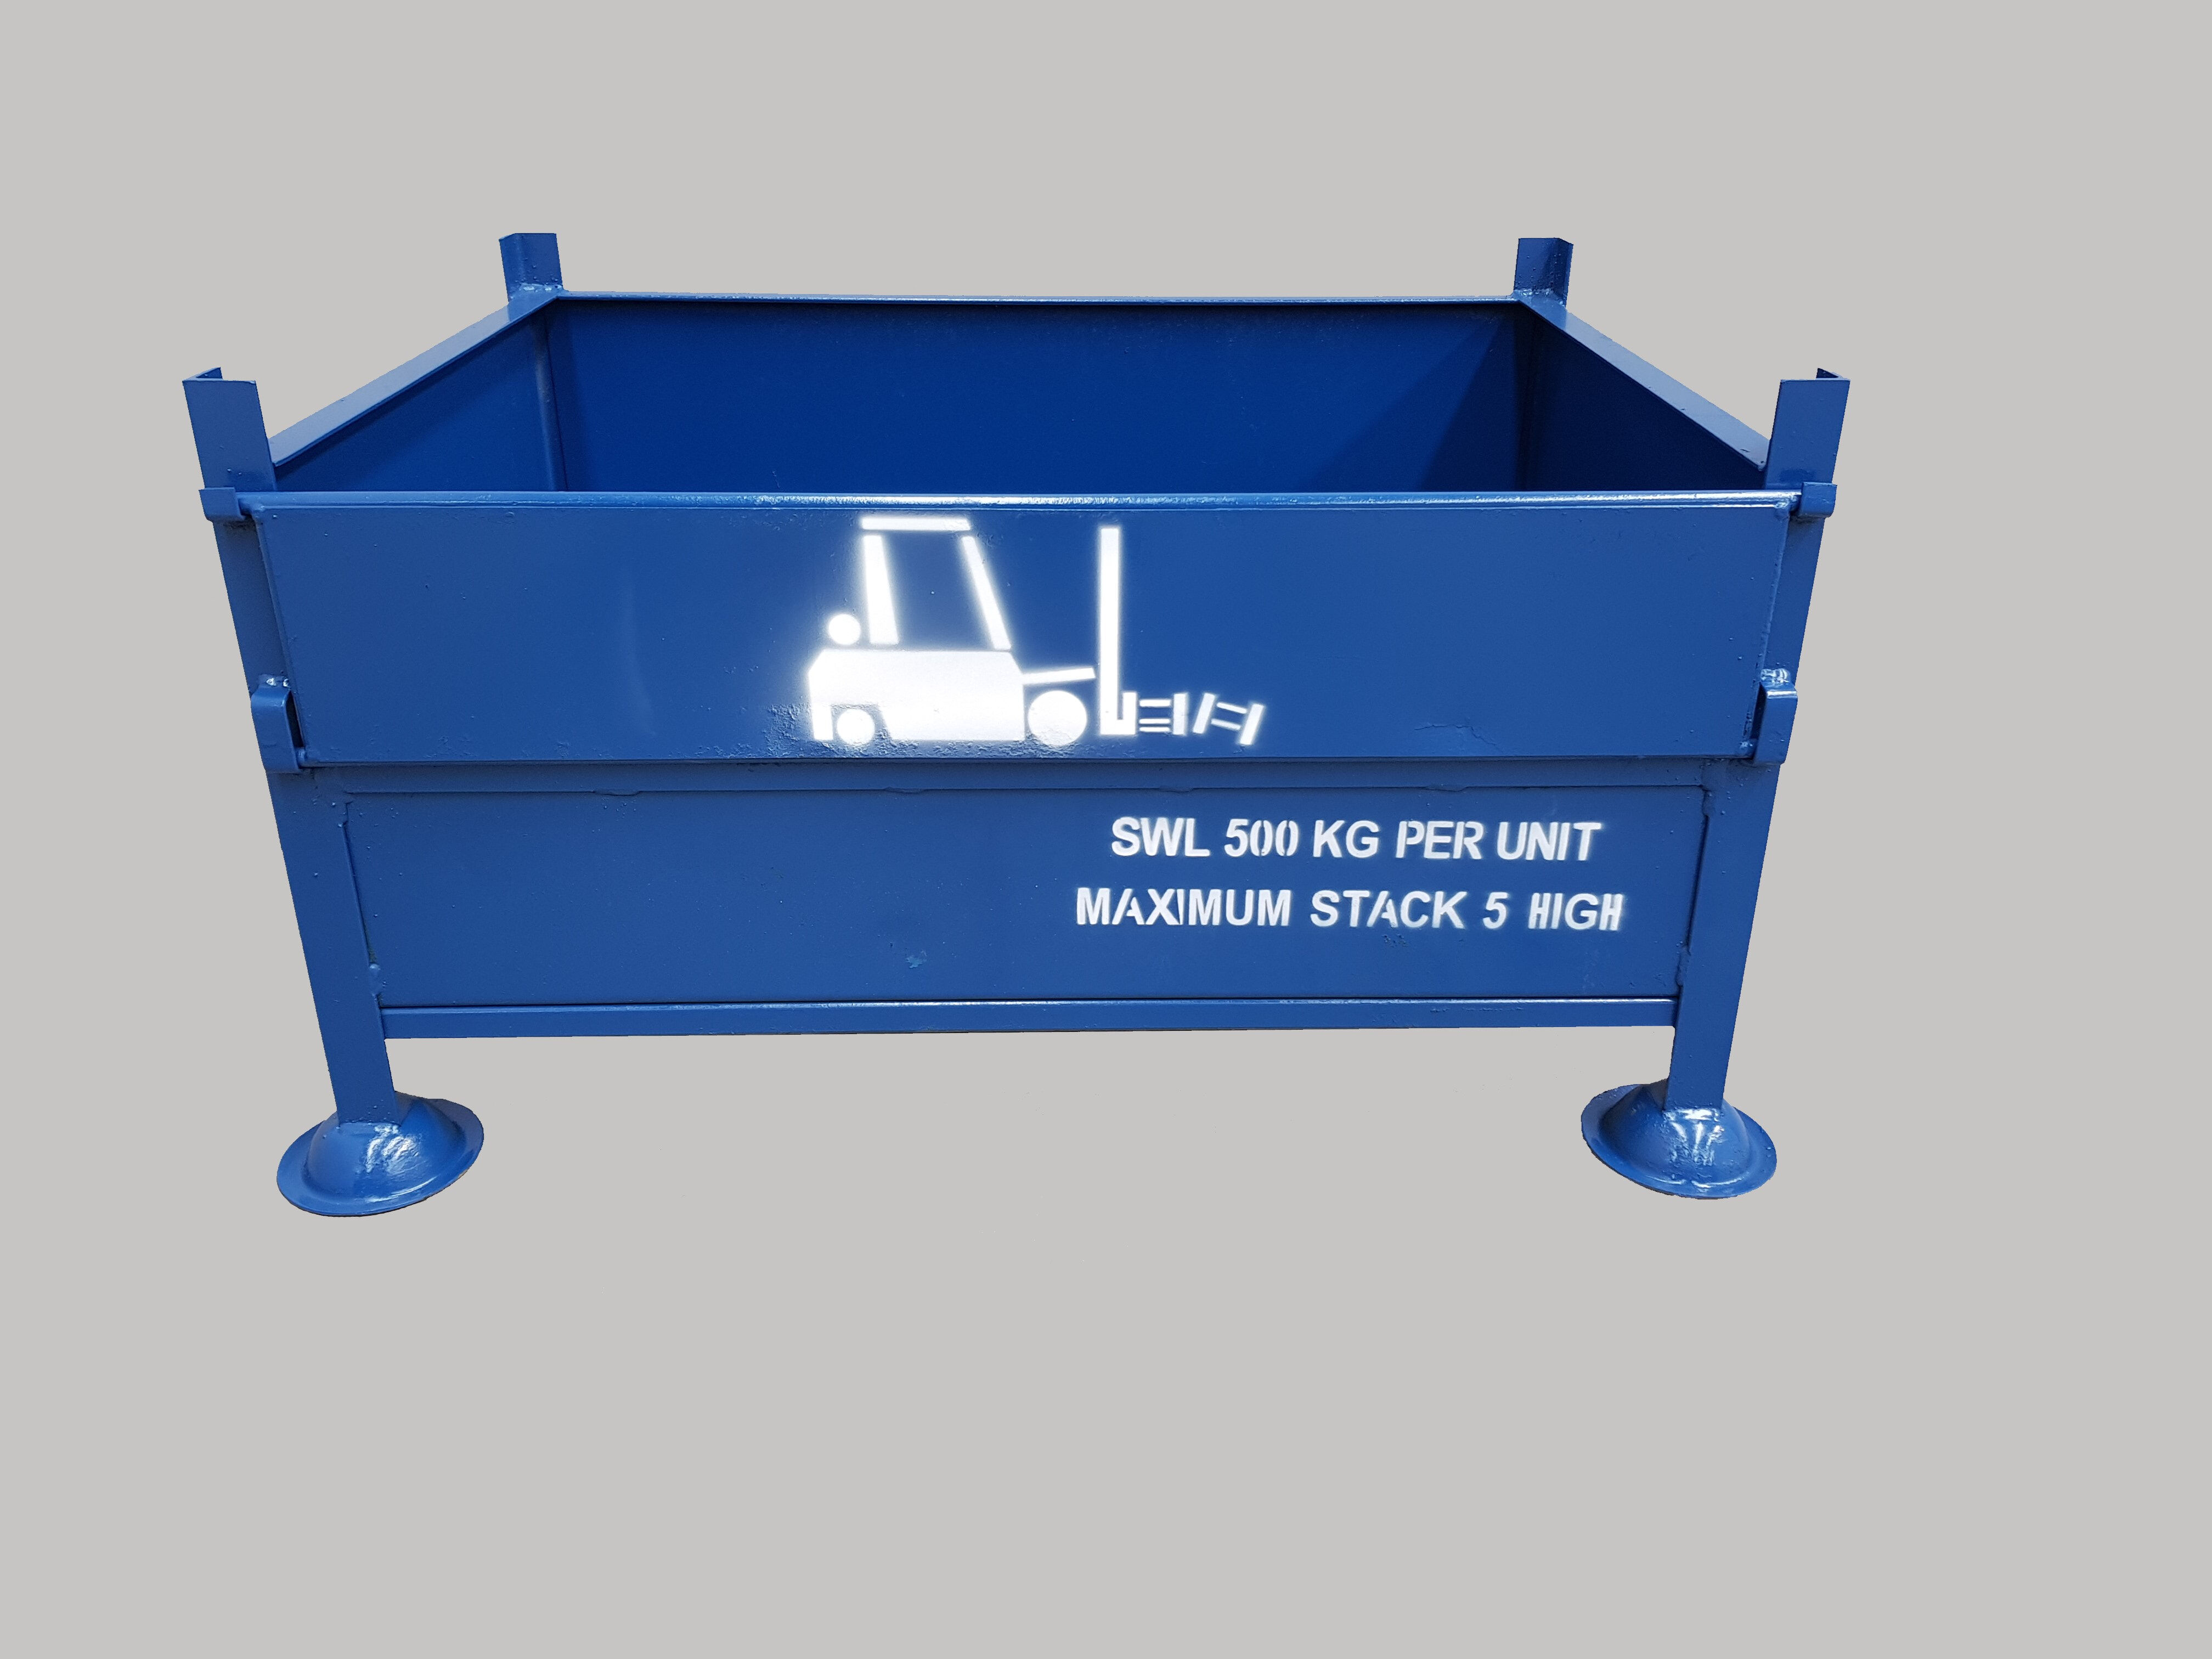 SS.3 All sheet pallet with half drop front gate.  Small parts